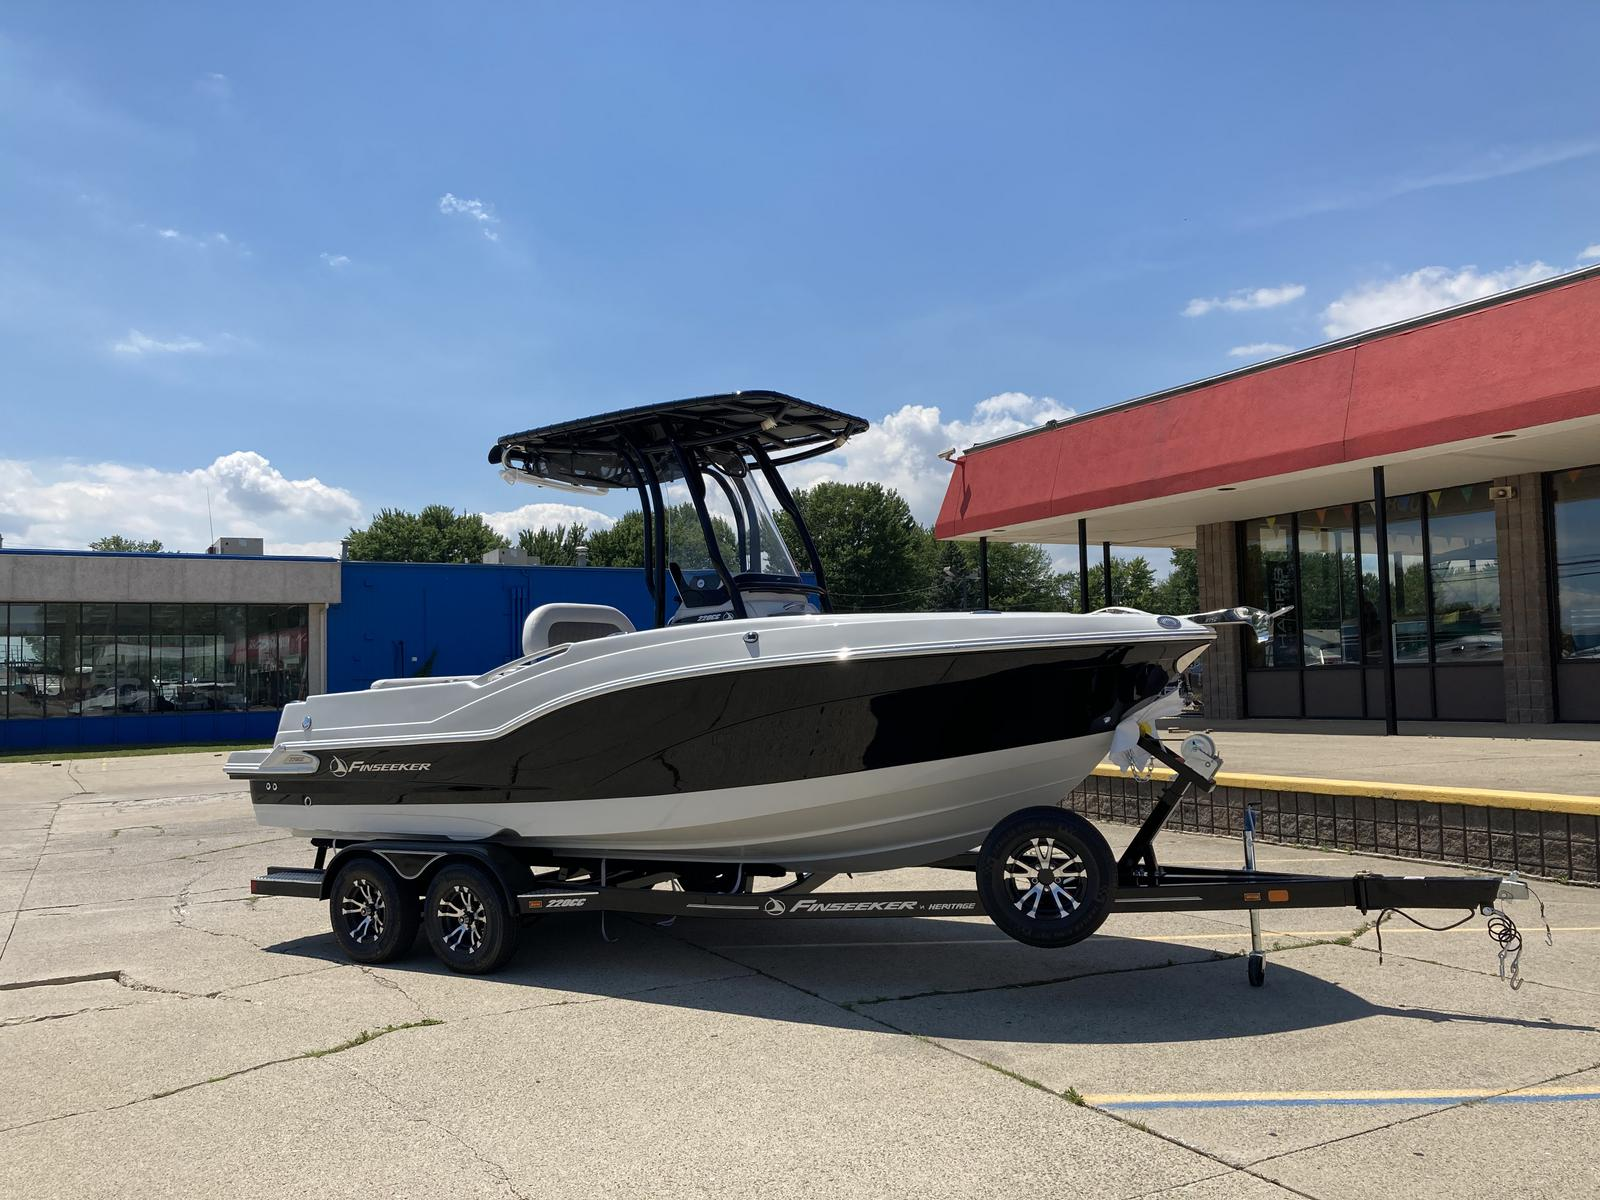 2021 Finseeker boat for sale, model of the boat is 220 Center Console & Image # 5 of 8